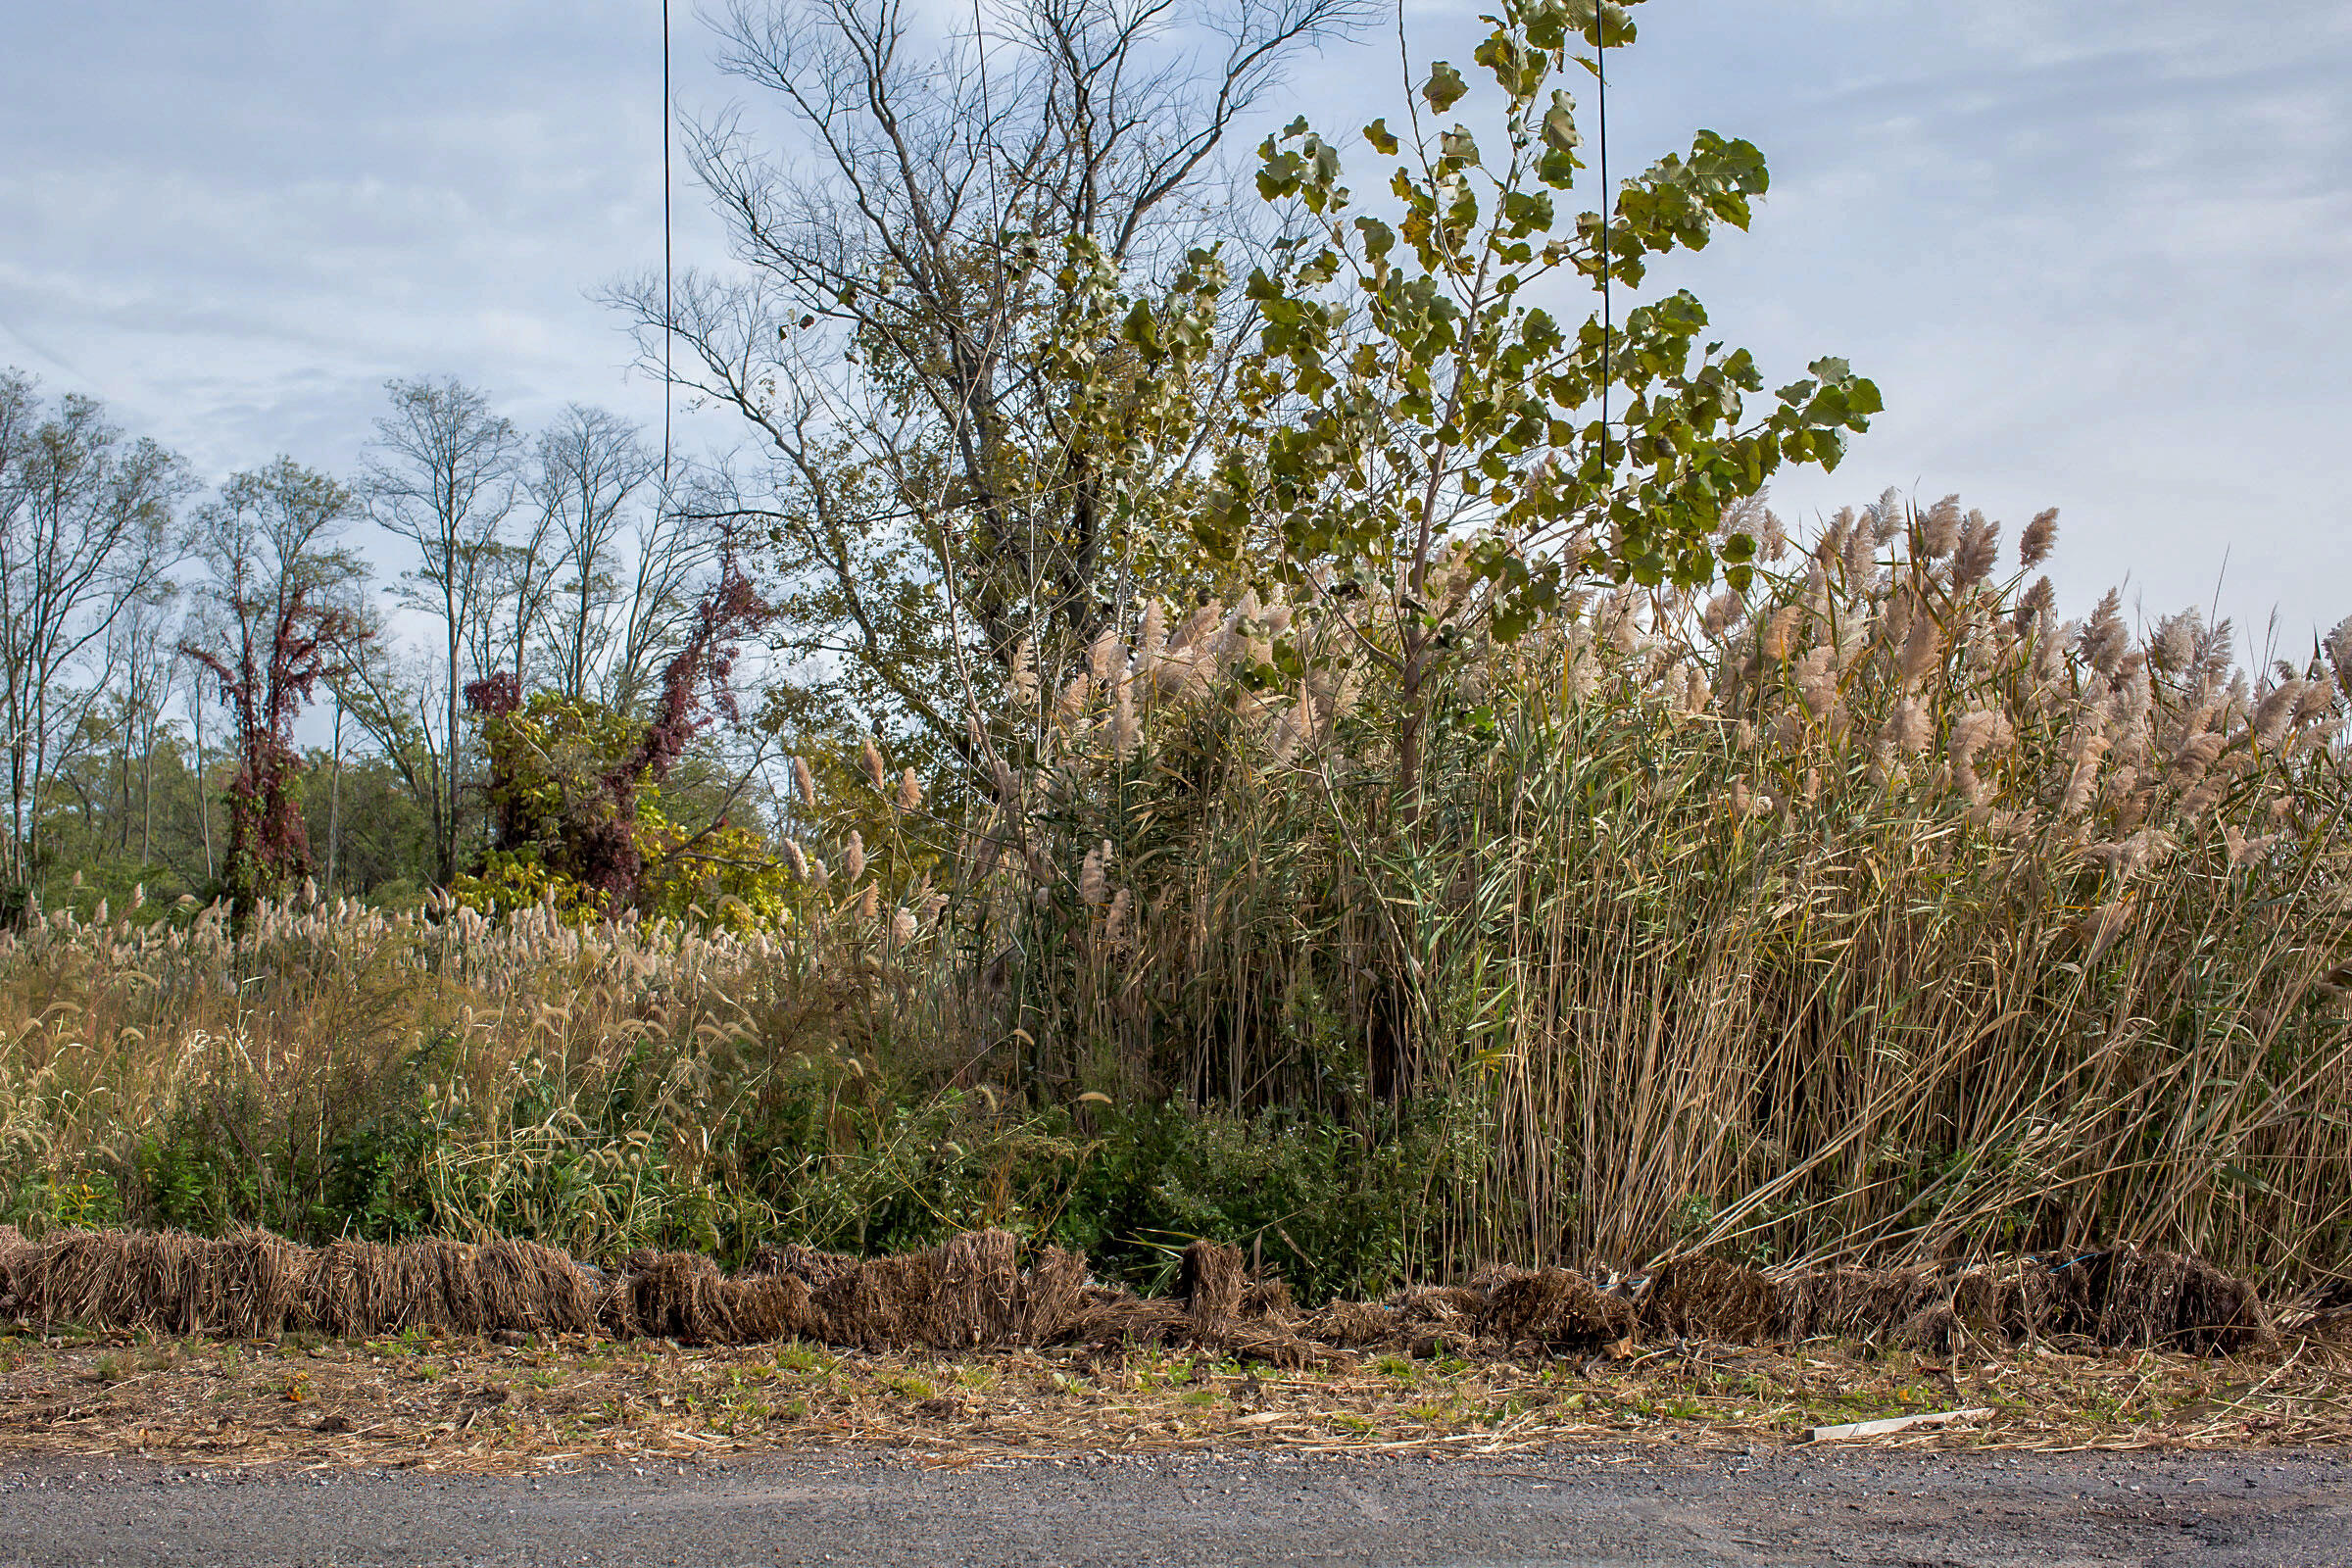 Two adjacent lots in different stages of regrowth: one demolished last year (left), and the other swept away by Hurricane Sandy (right). October 29, 2016. Hillary Eggers